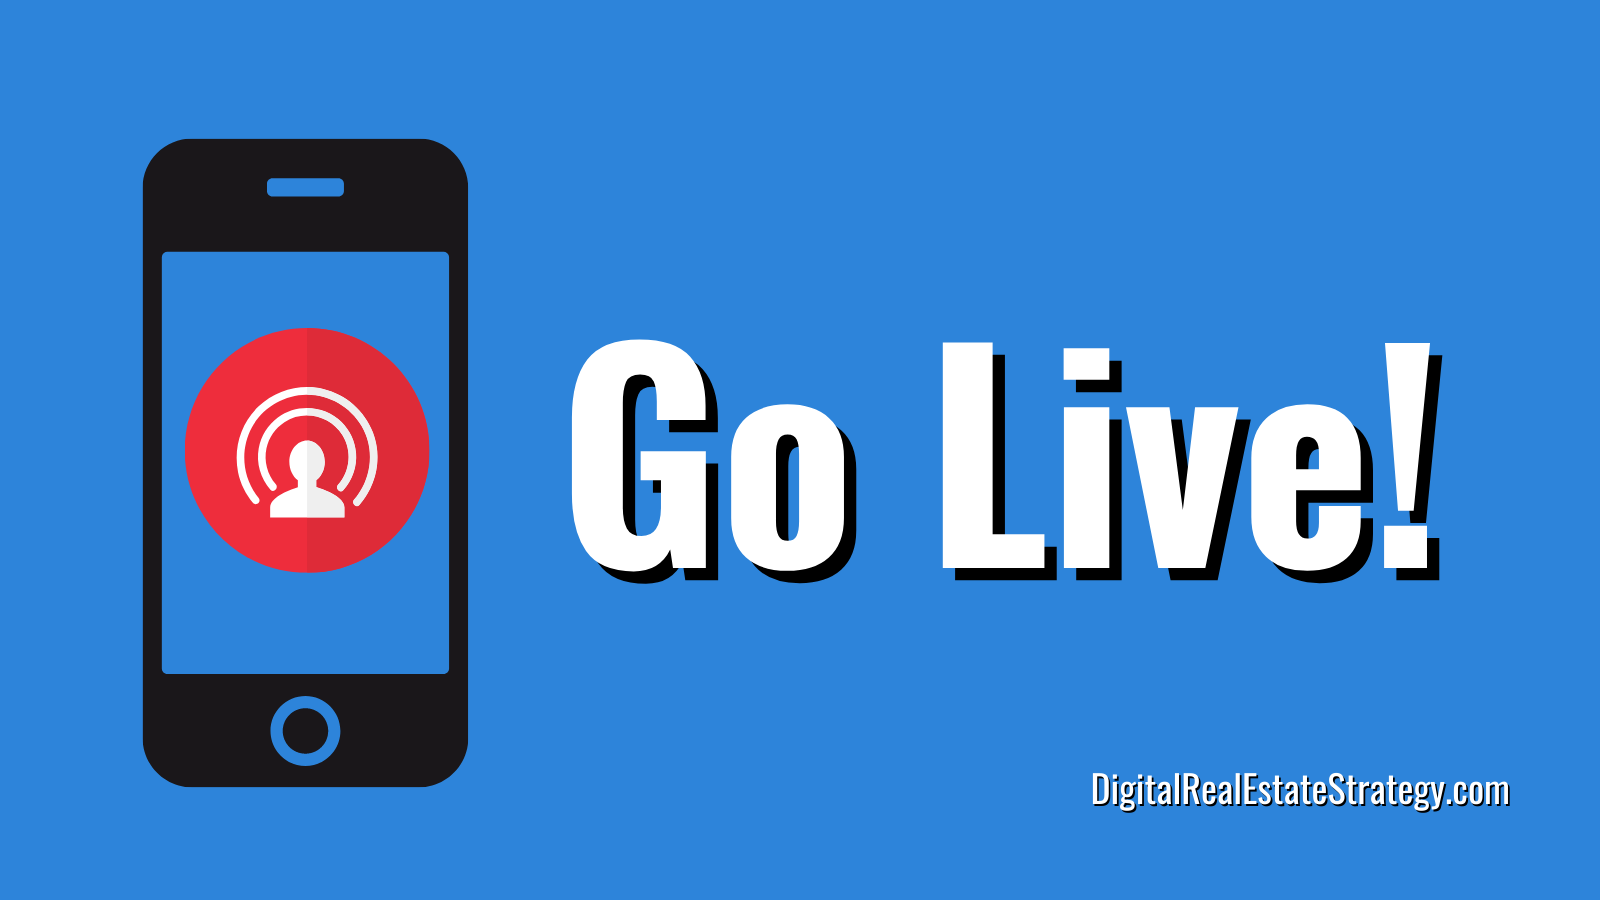 Video Marketing For Realtors - Go Live Use - Use Live Video